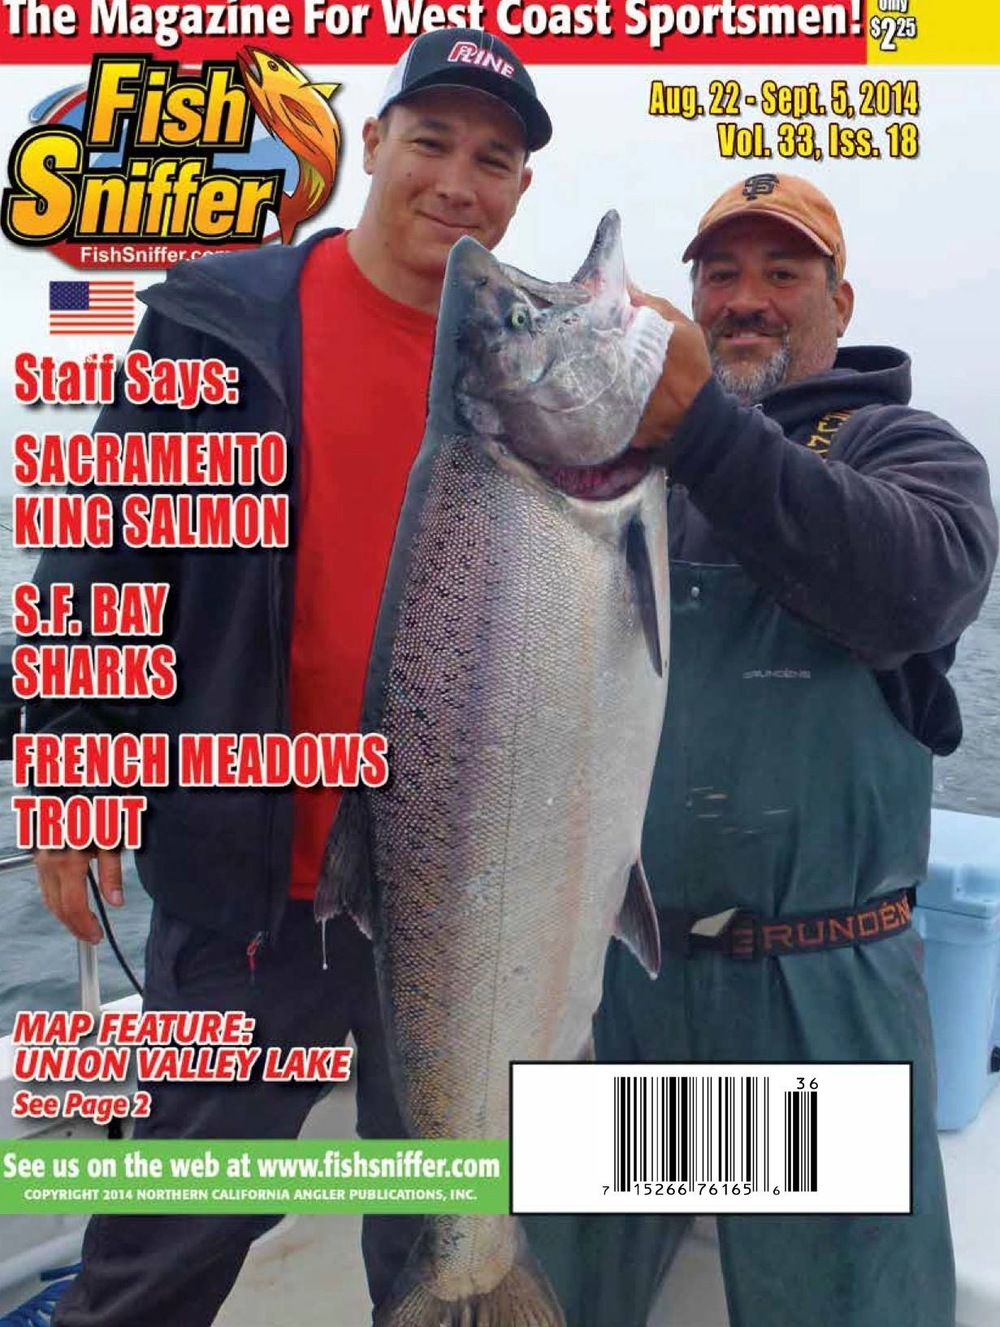 Fish Sniffer Cover Shot Captain Tim Wong & Jeff Caramella  NorCal Sportfishing Adventures